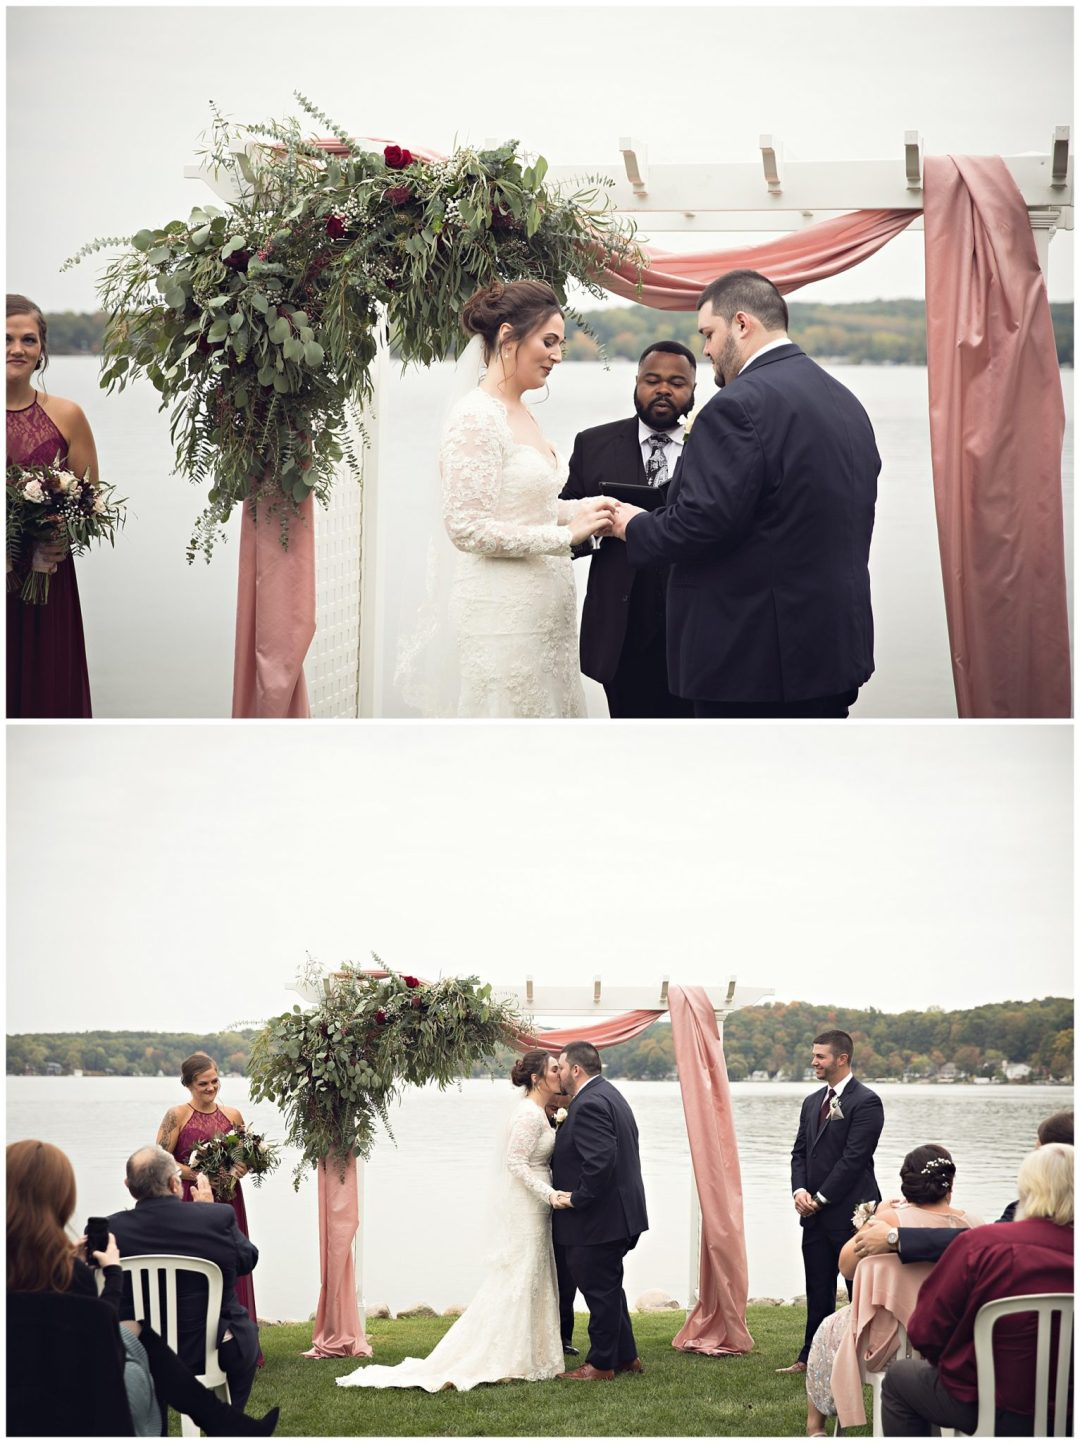 Fall colors October wedding ceremony at Bay Pointe Inn on Gun Lake photographed by Melissa Gregersen Photography